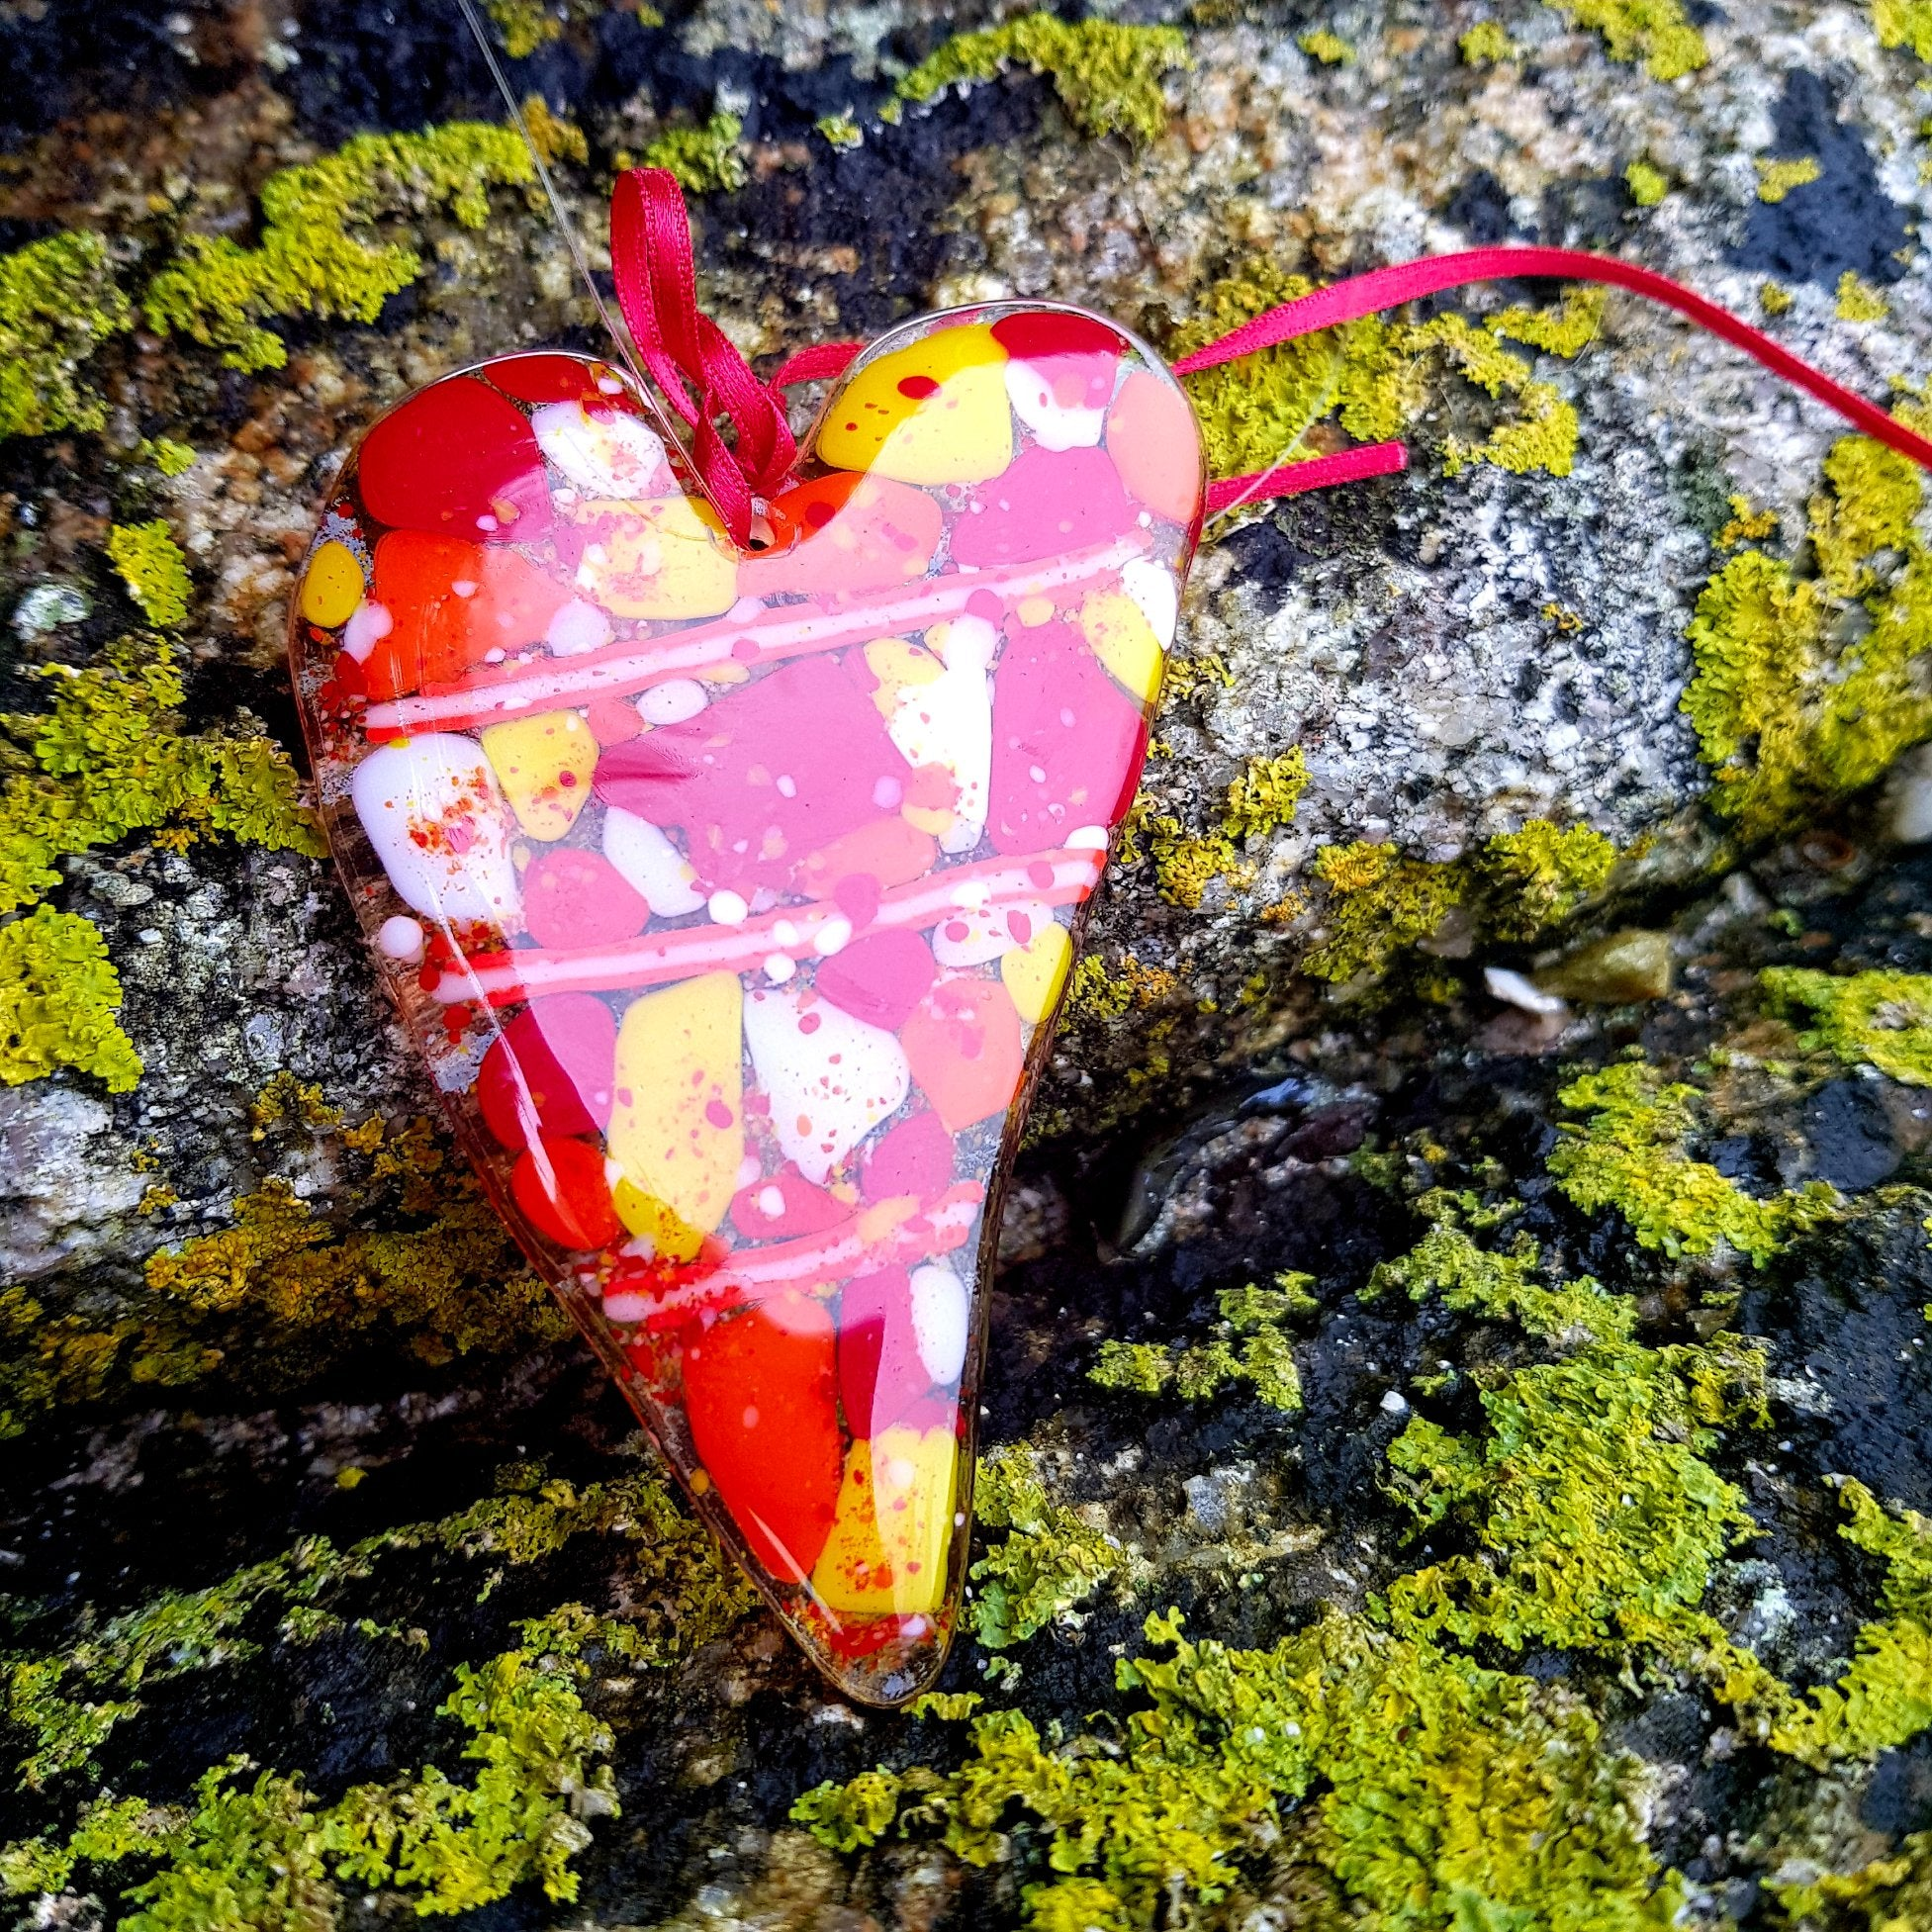 A beautiful glass hanging decoration in the shape of a heart, made with red, yellow, orange and white glass